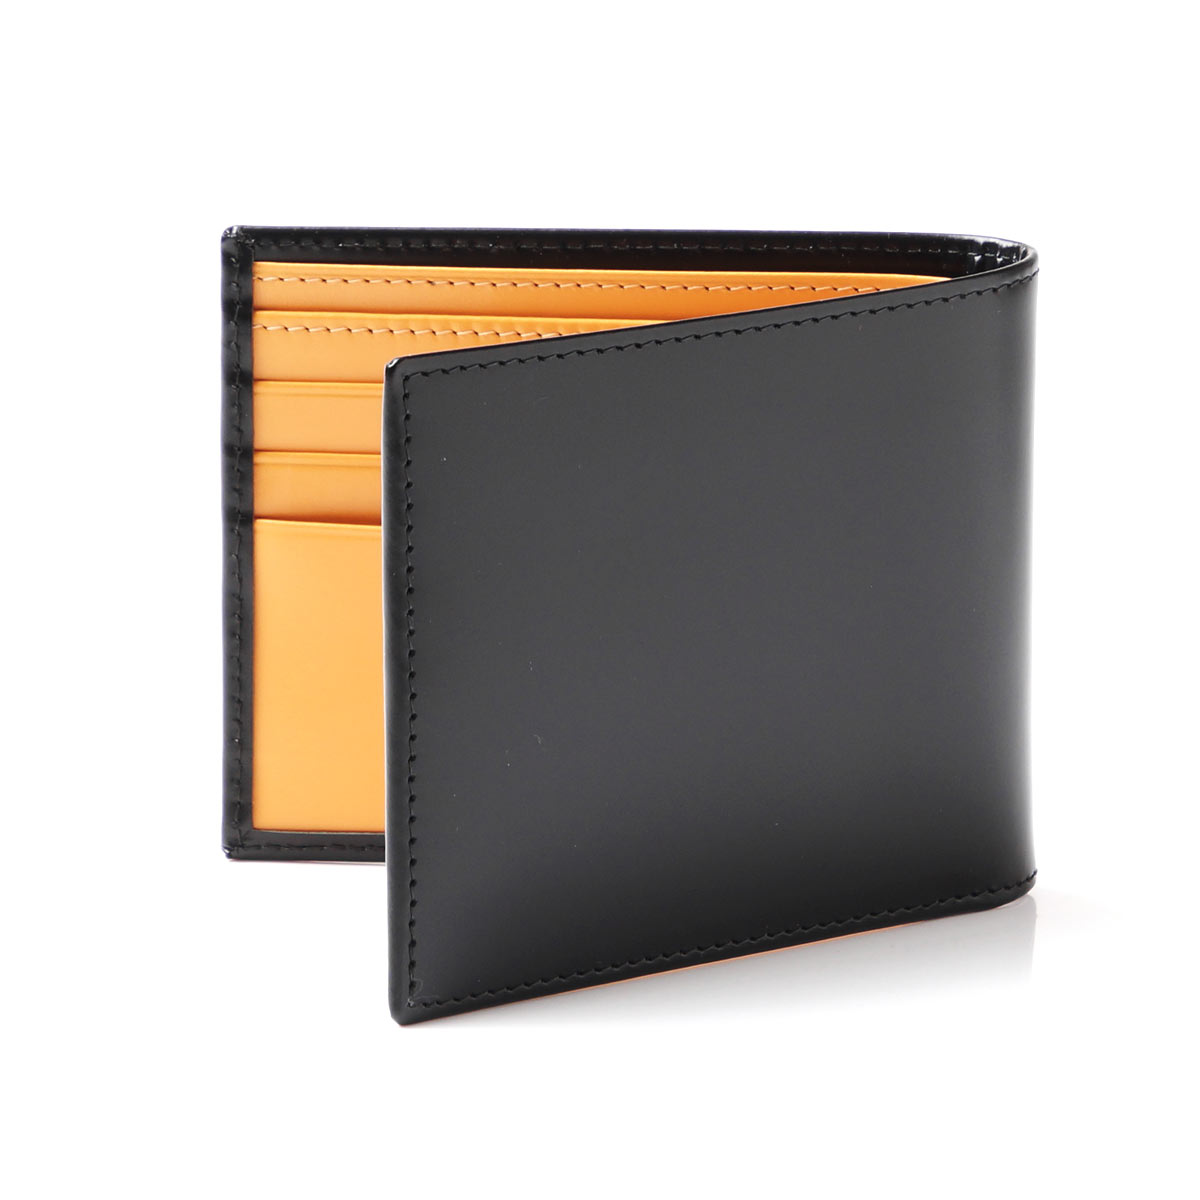 Ettinger ETTINGER two fold wallet BRIDLE LEATHER 030cjr bridle men